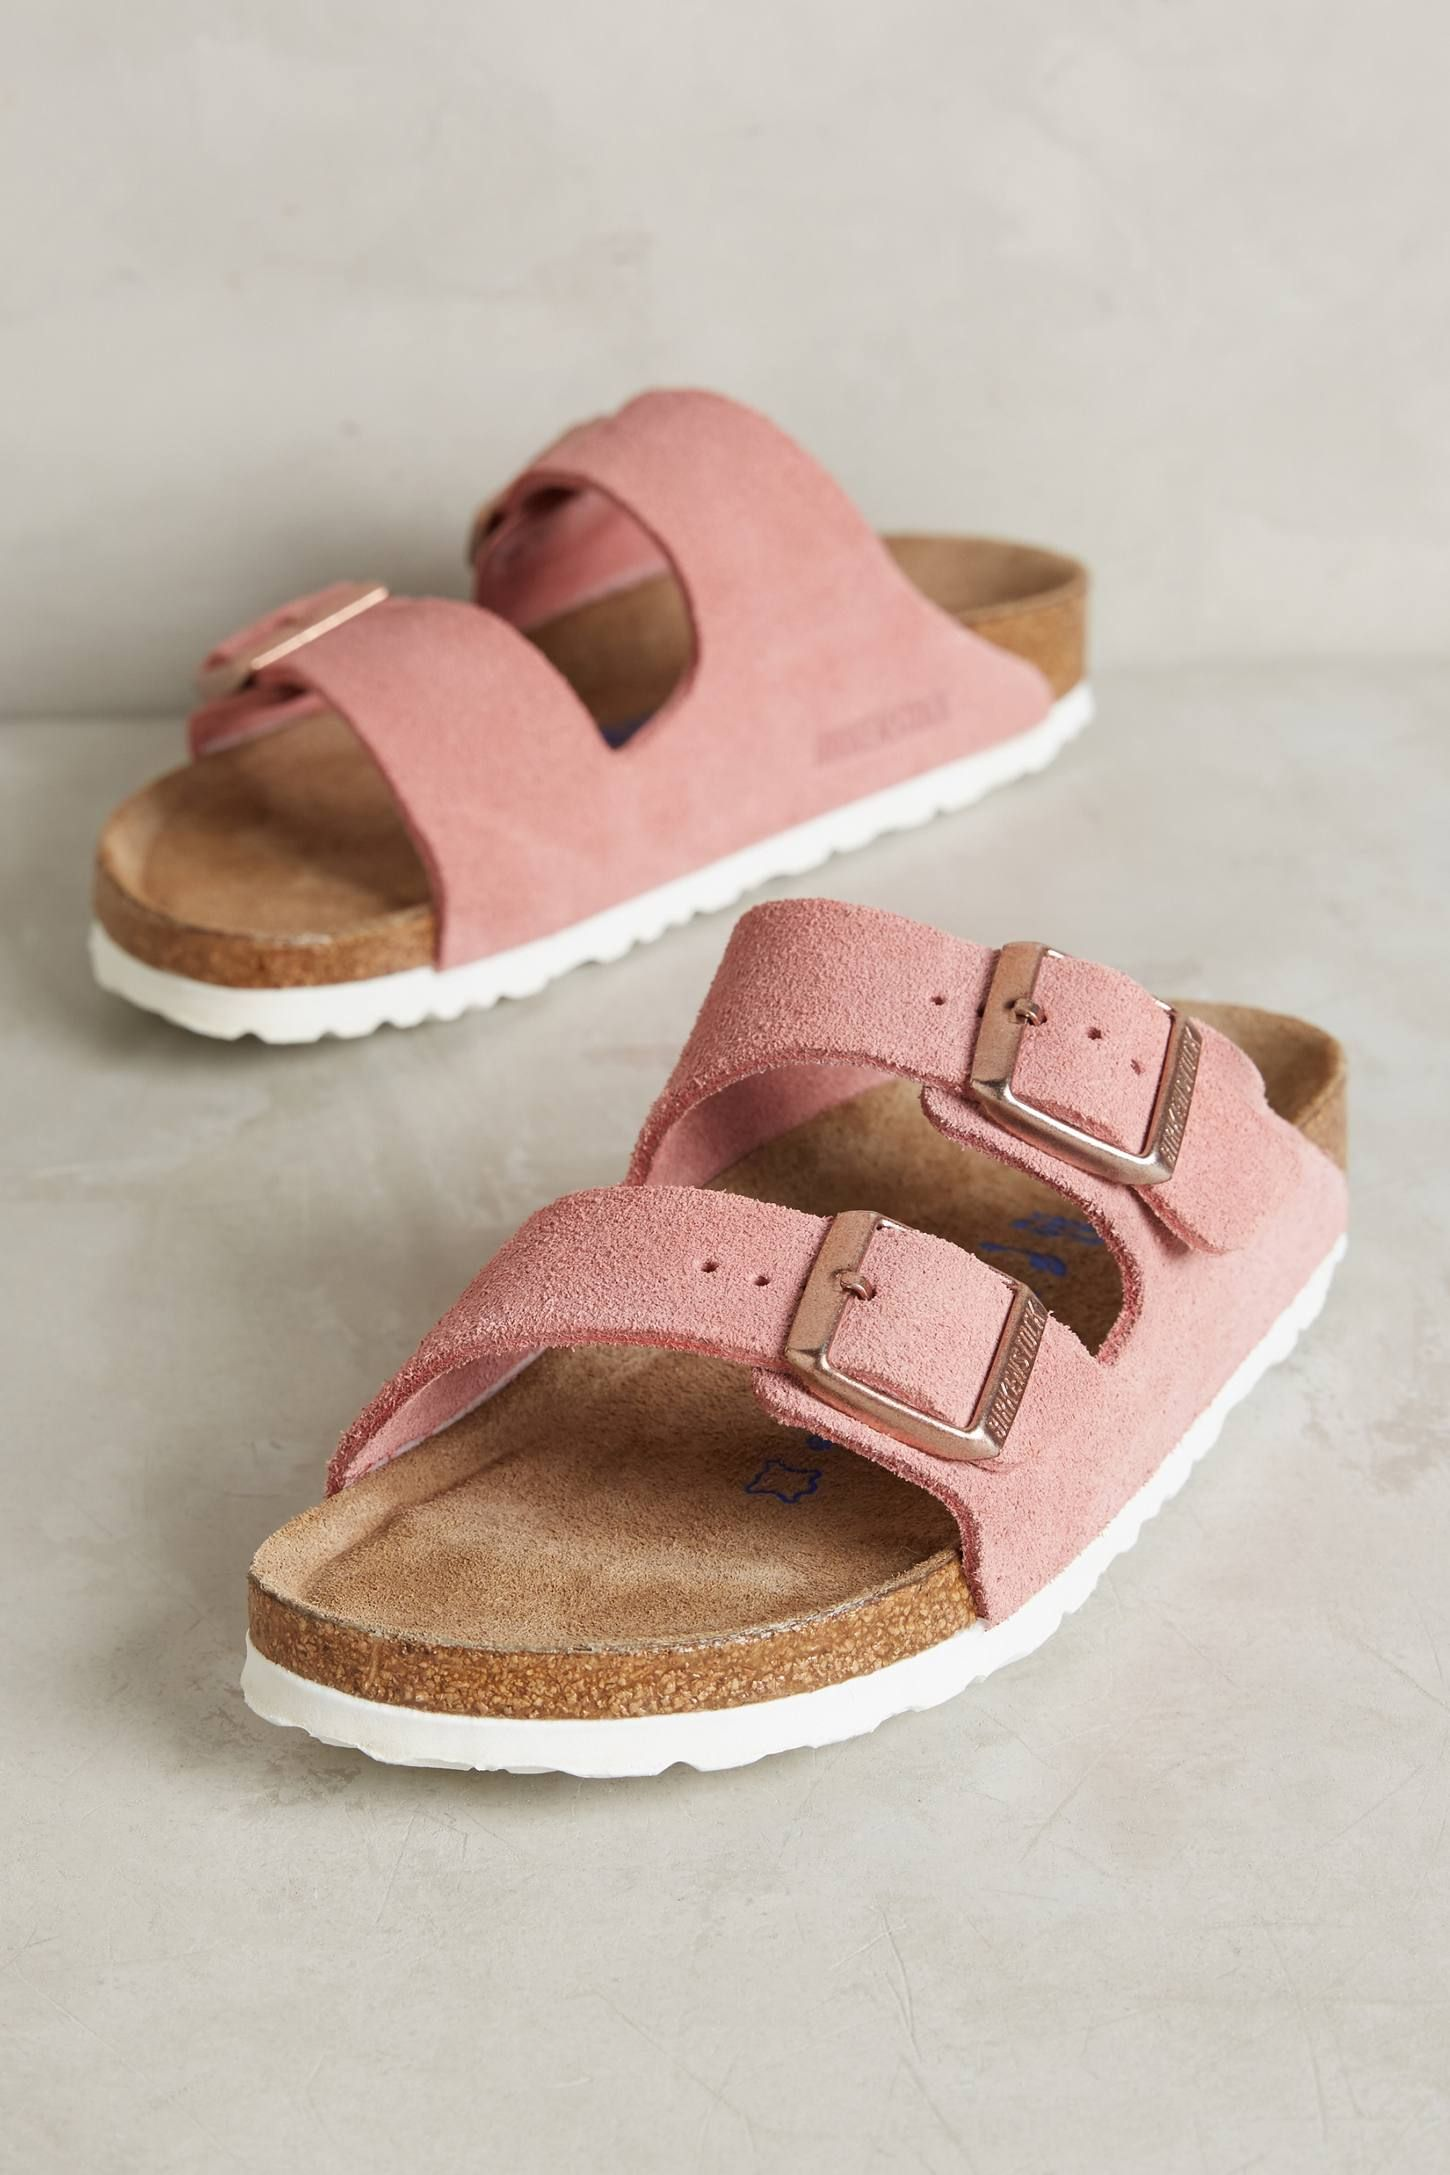 aaed255e516 Shop the Birkenstock Suede Arizona Sandals and more Anthropologie at  Anthropologie today. Read customer reviews